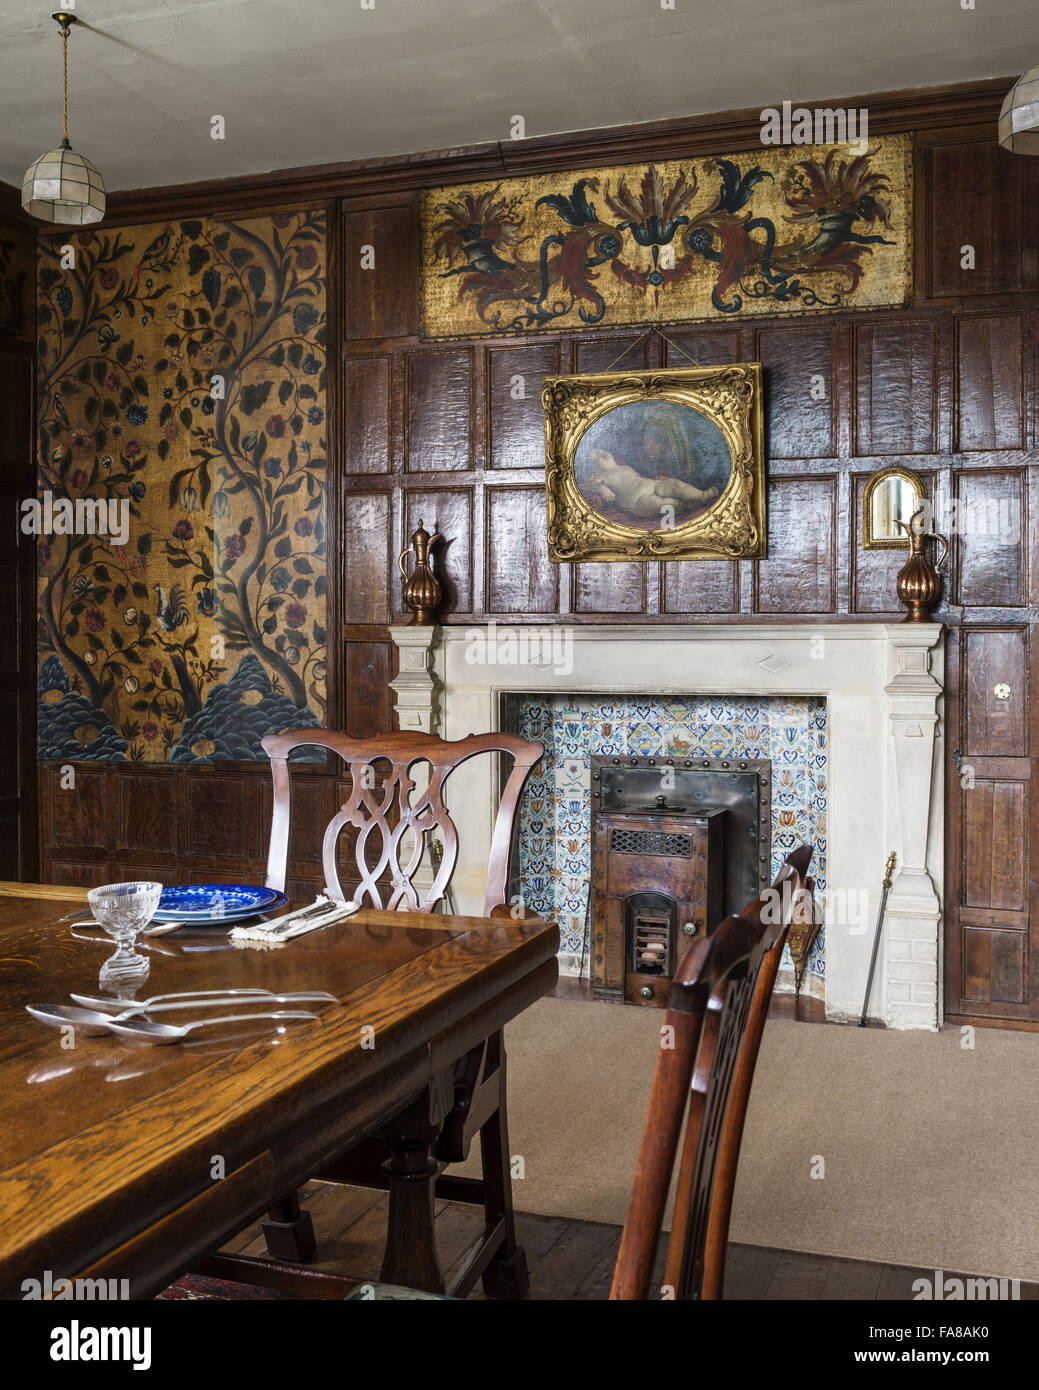 The Dining Room at Bateman's, East Sussex. Bateman's was the home ...